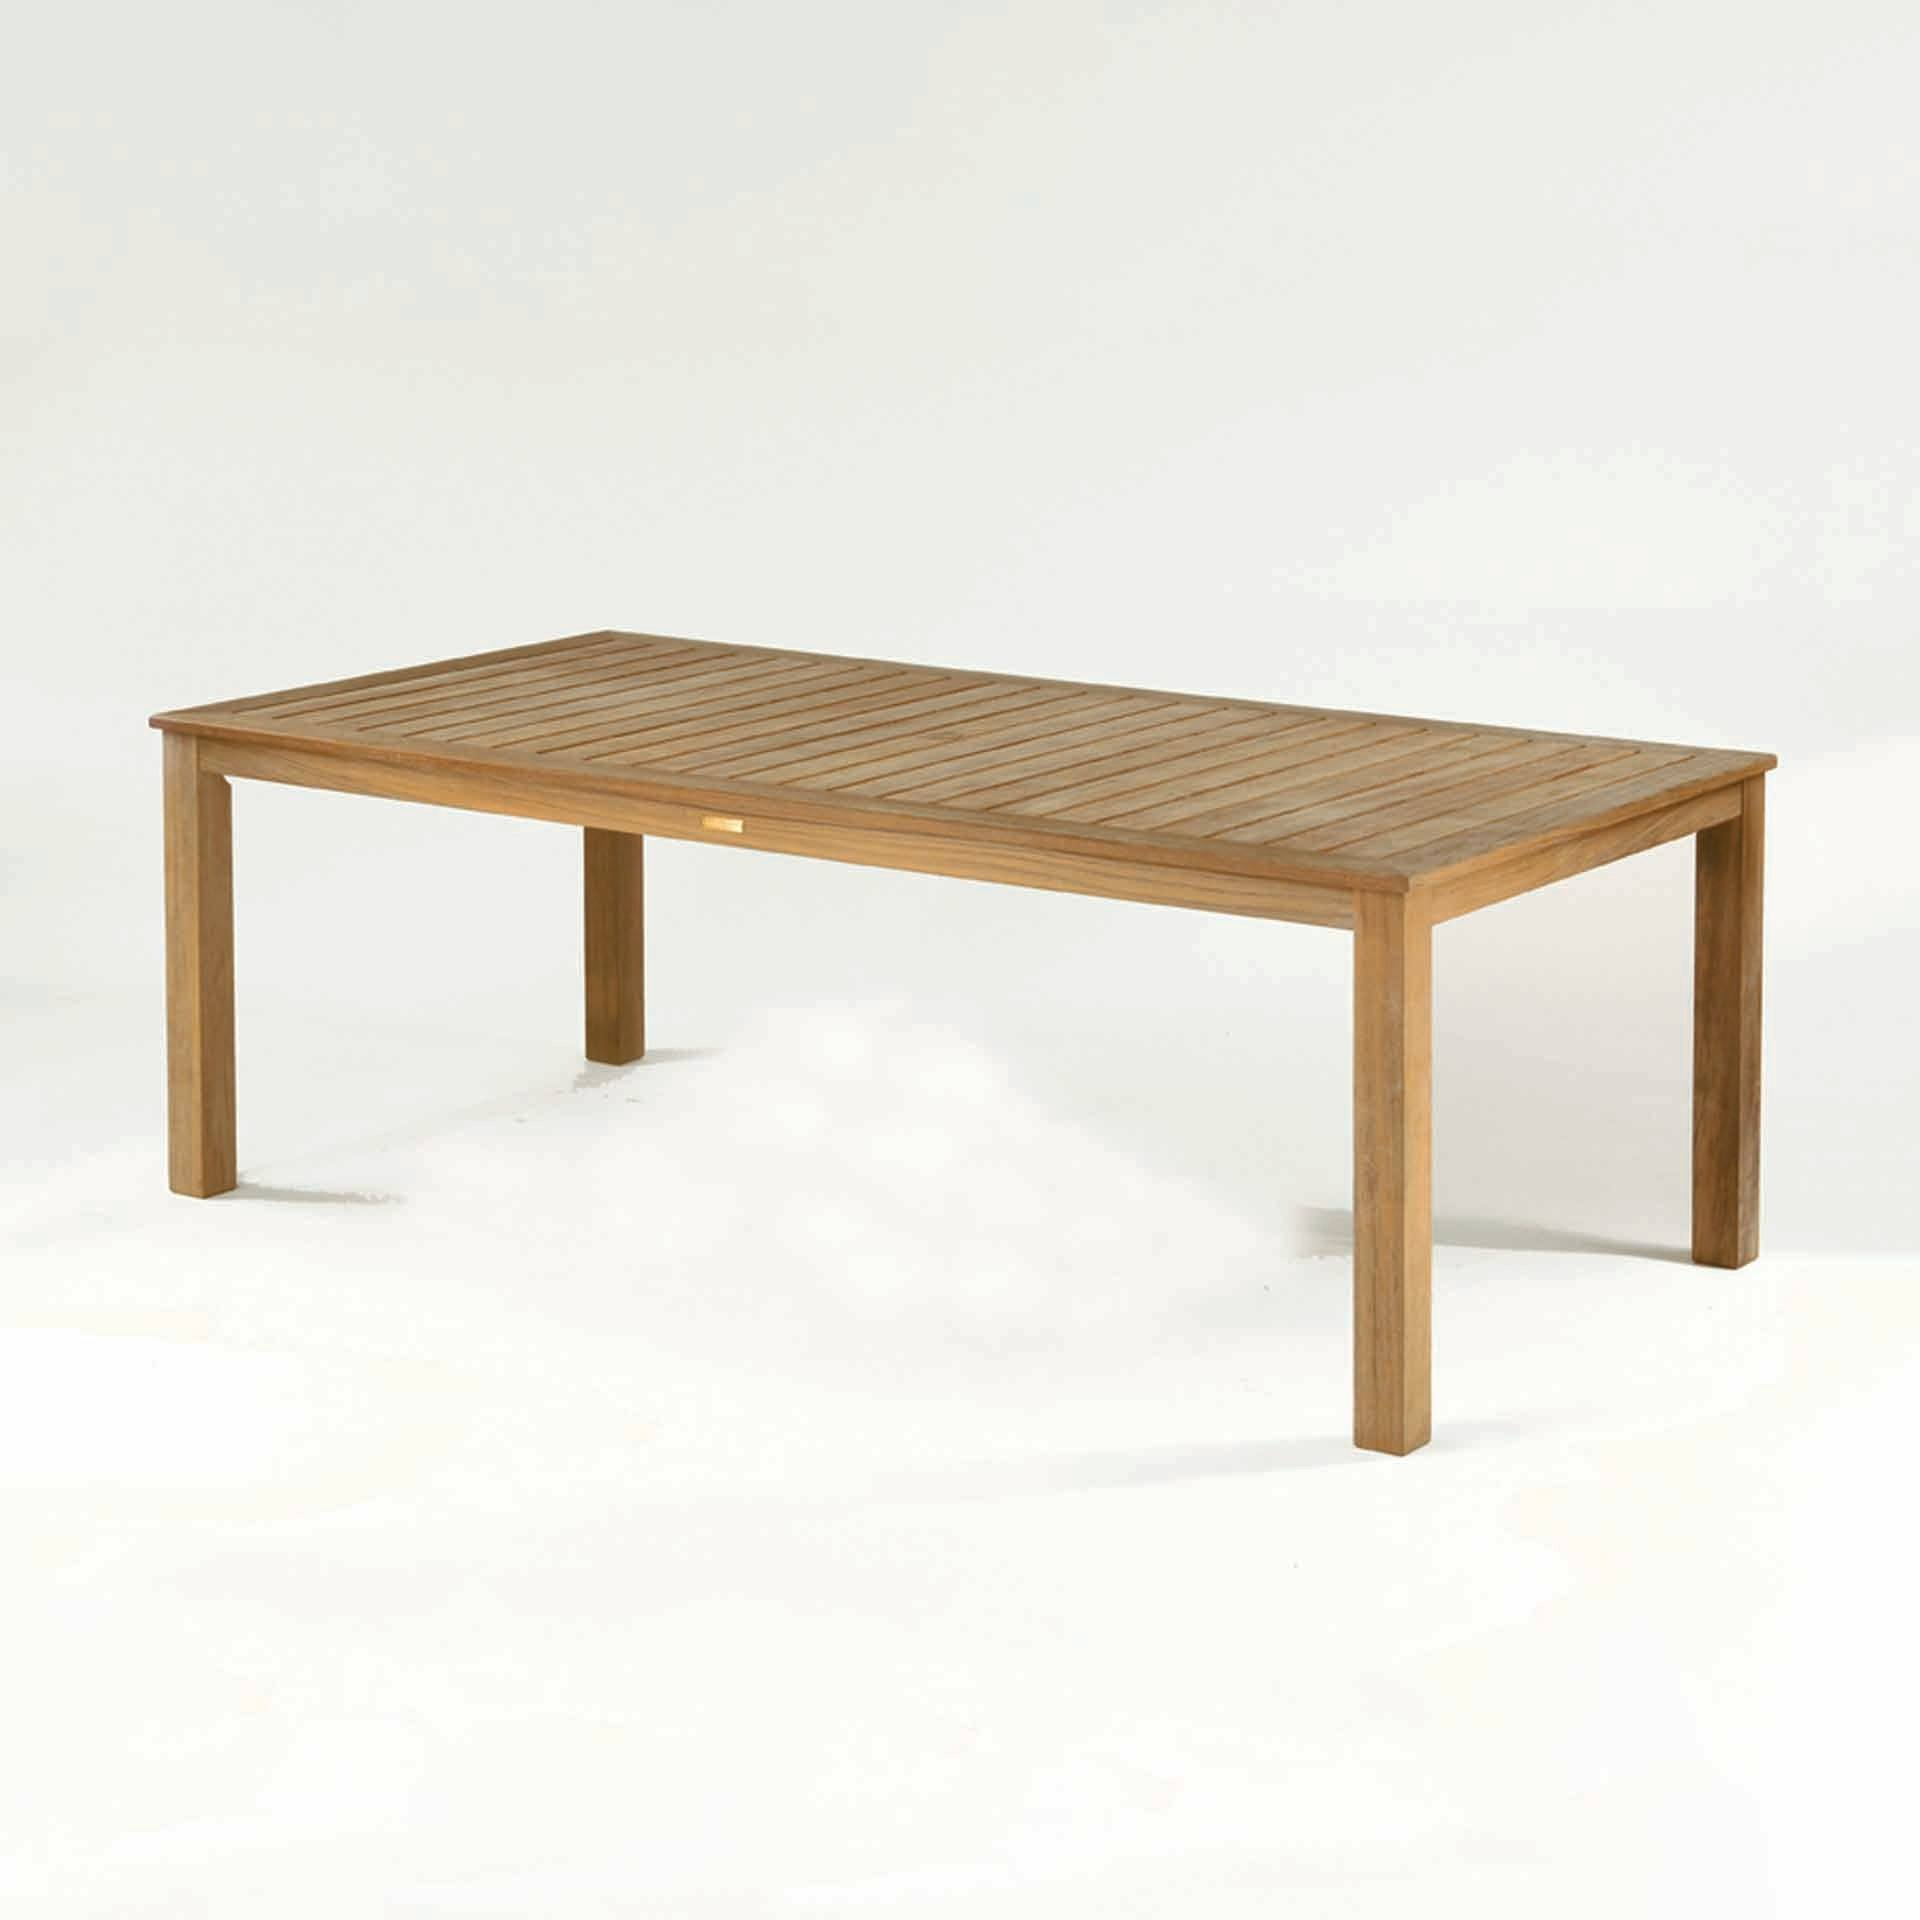 Kingsley bate wainscott 85x45 rectangular dining table for 85 dining table